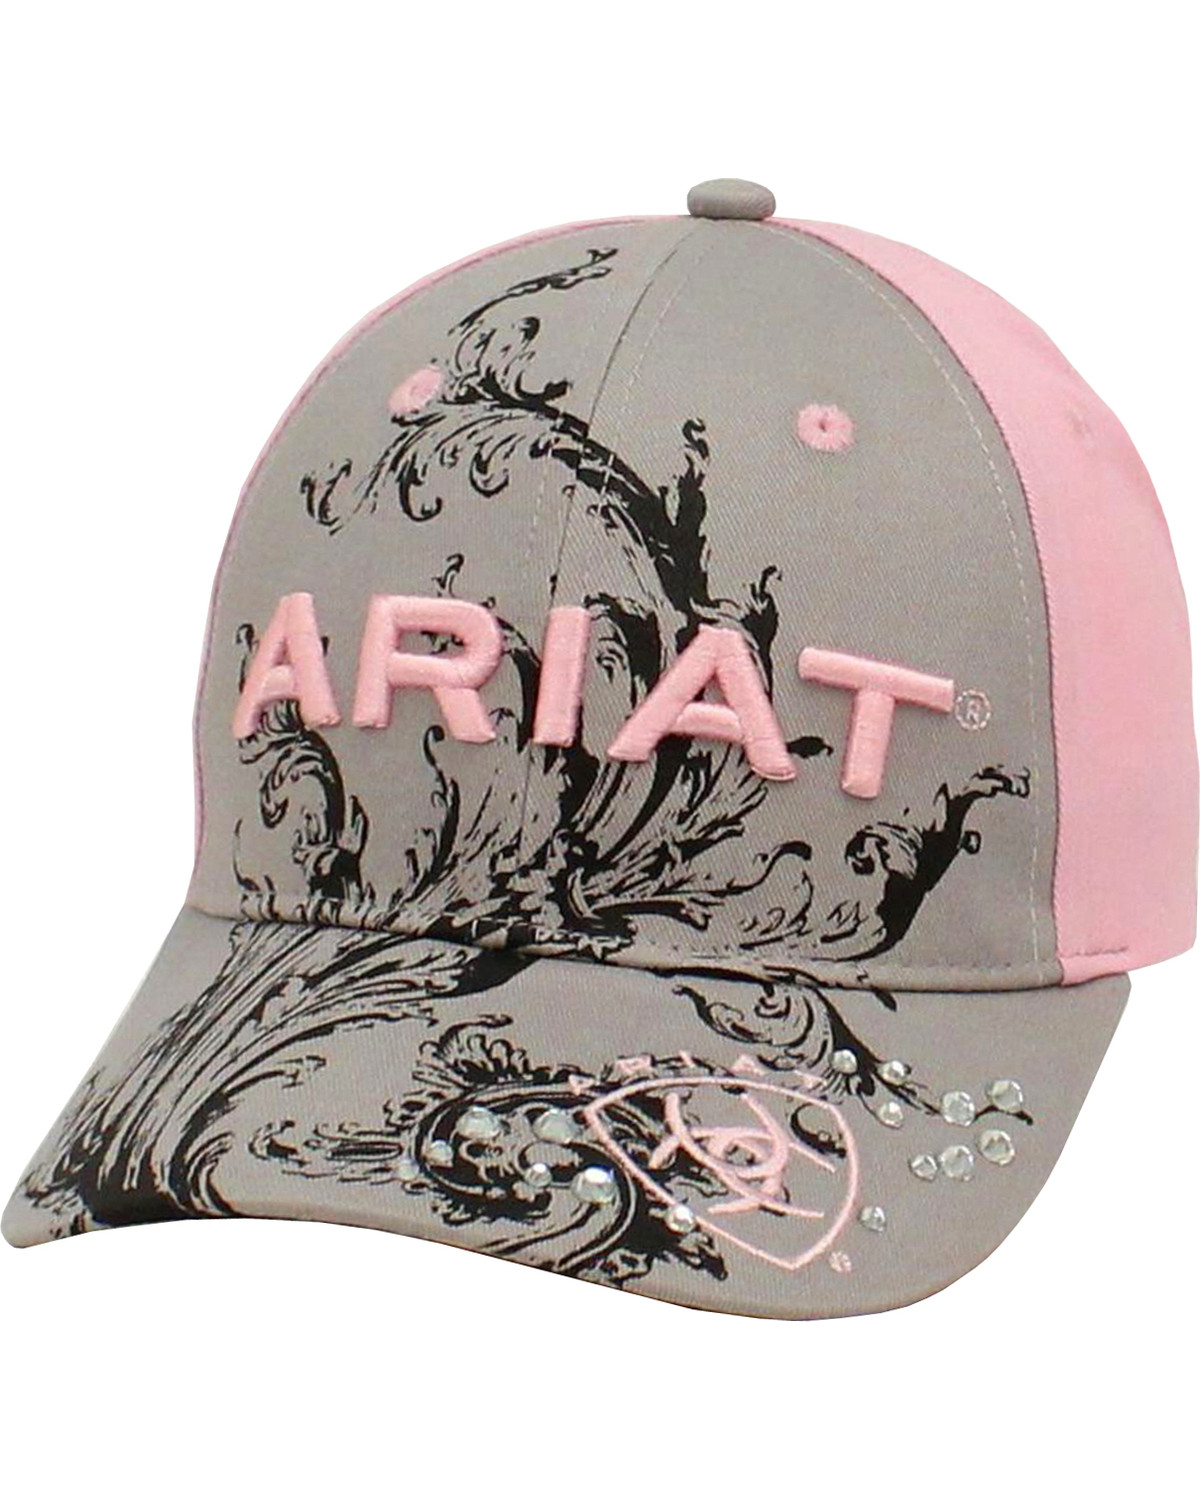 6657f68d520 Ariat Women s Scroll and Rhinestones Baseball Cap